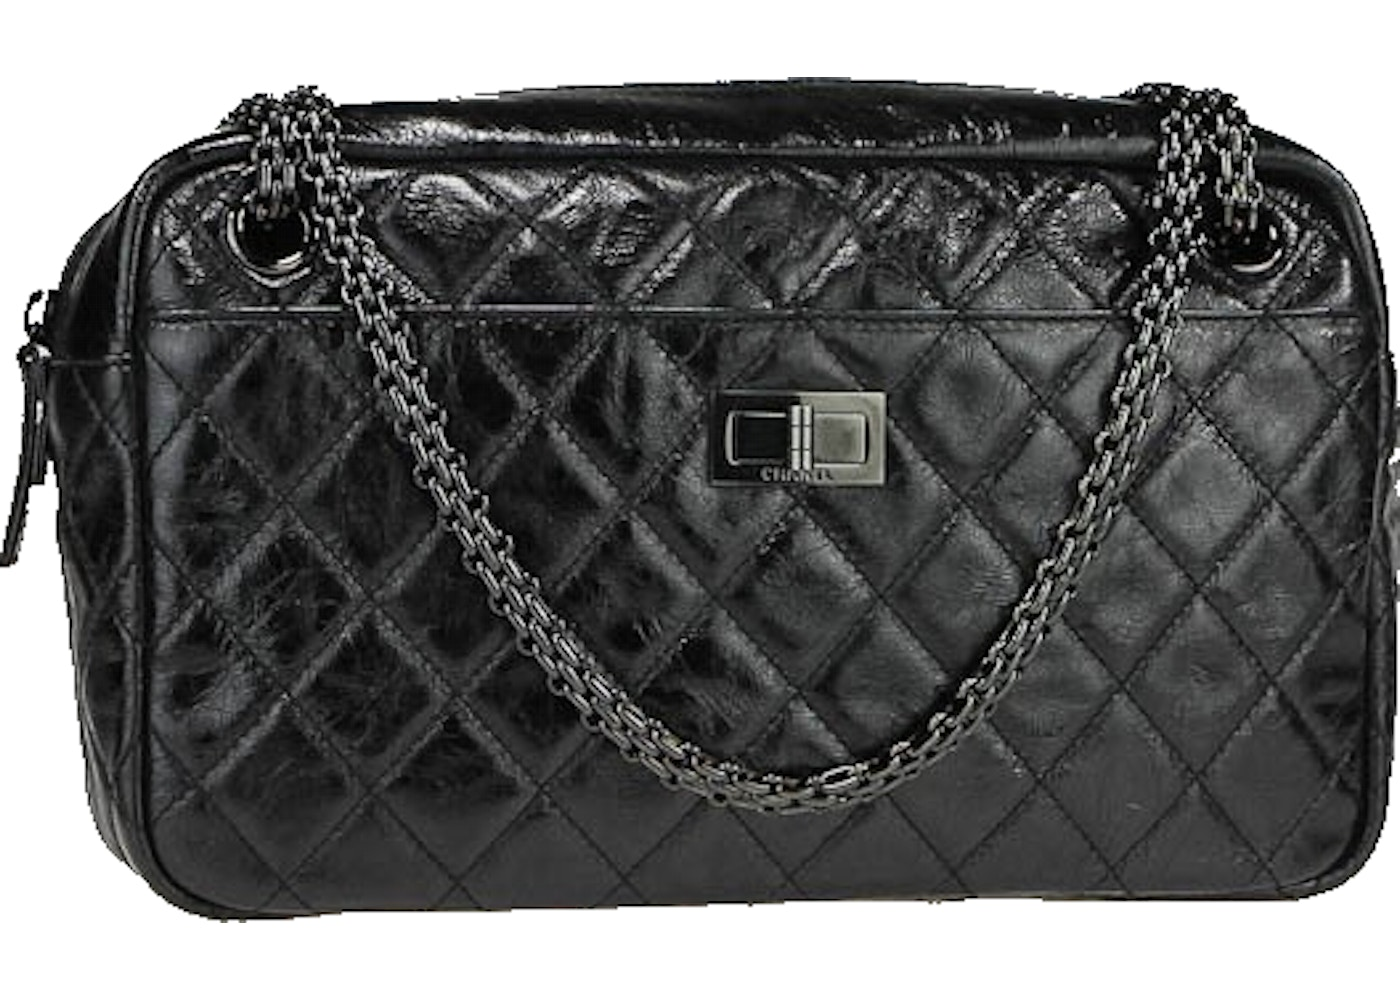 da0ad7b7a6be Sell. or Ask. View All Bids. Chanel Reissue Camera Bag Quilted Metallic  Aged Medium Black